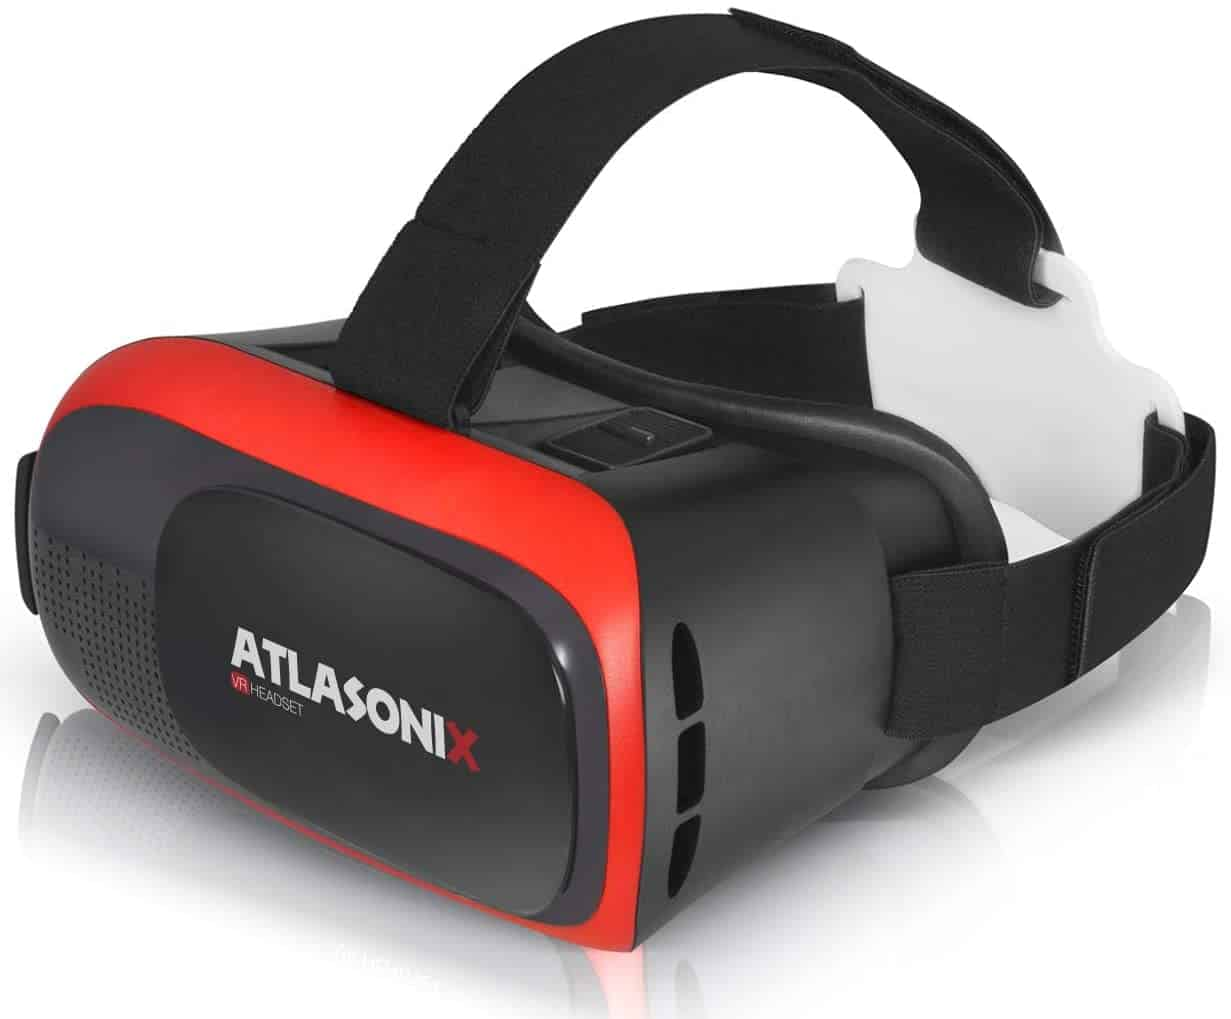 Atlasonix Store VR Headset Compatible with iPhone